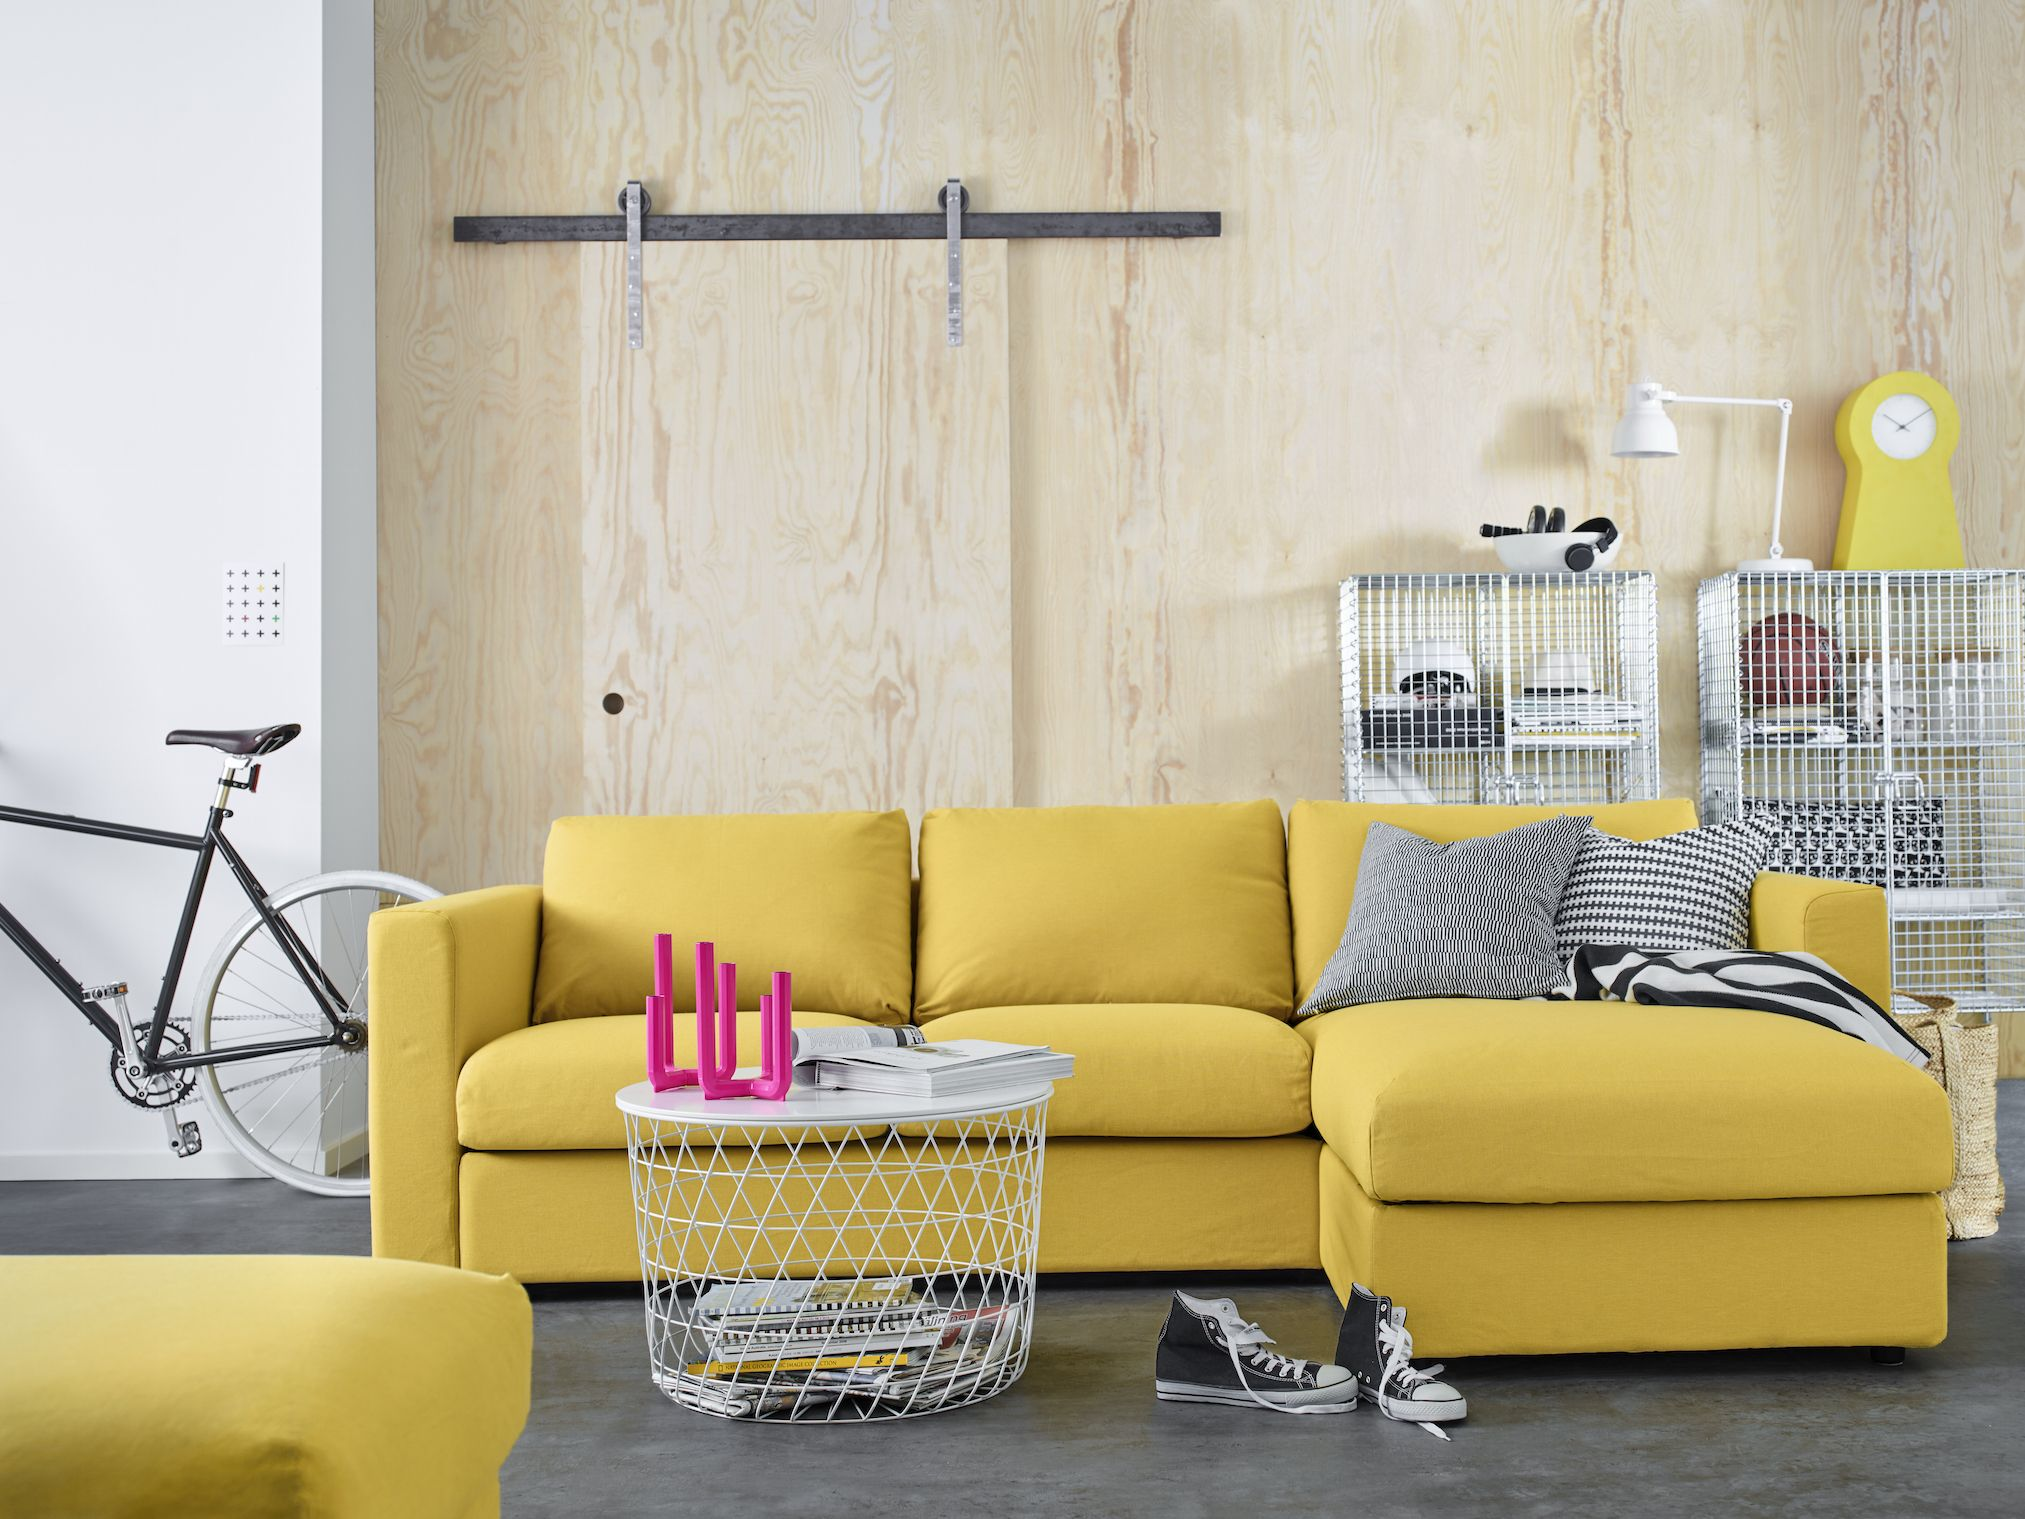 Ikea VIMLE Sofa   Yellow